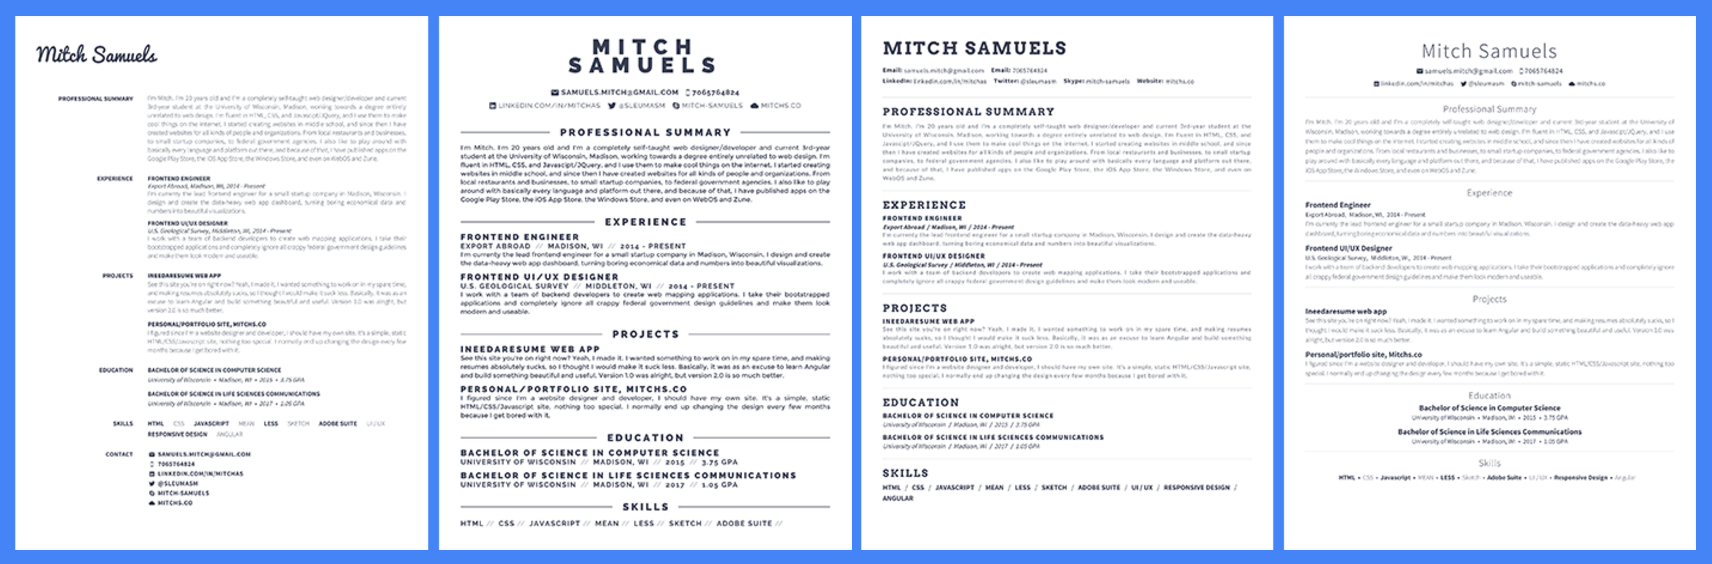 how to make a resume visually appealing